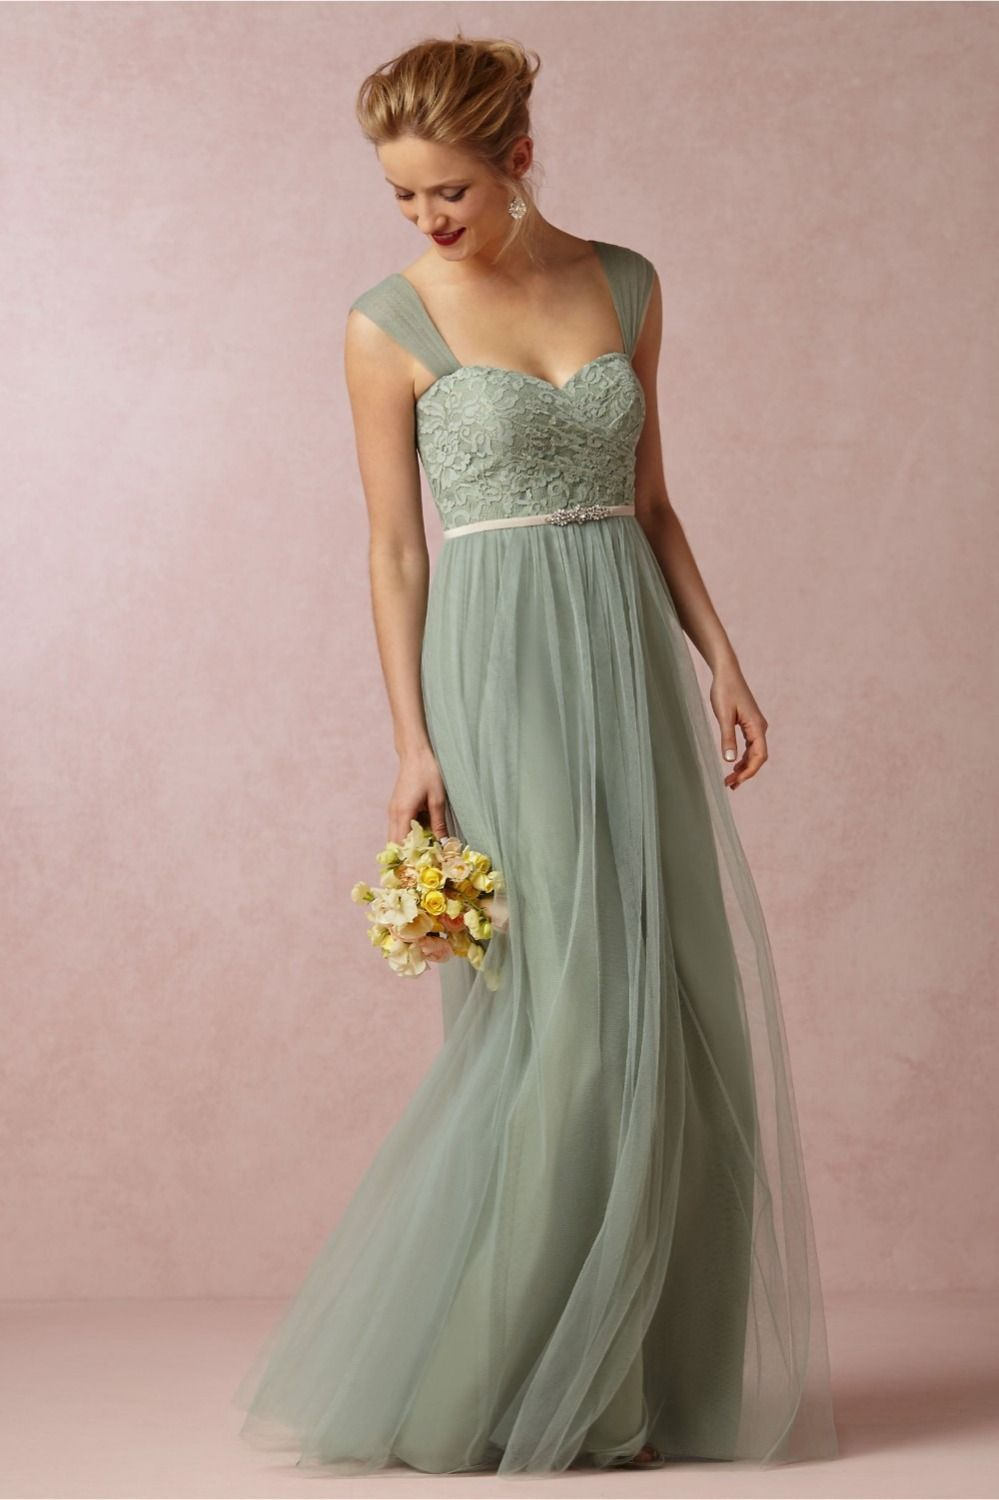 Elegant Long Bridesmaid Dresses For Wedding Mint Green